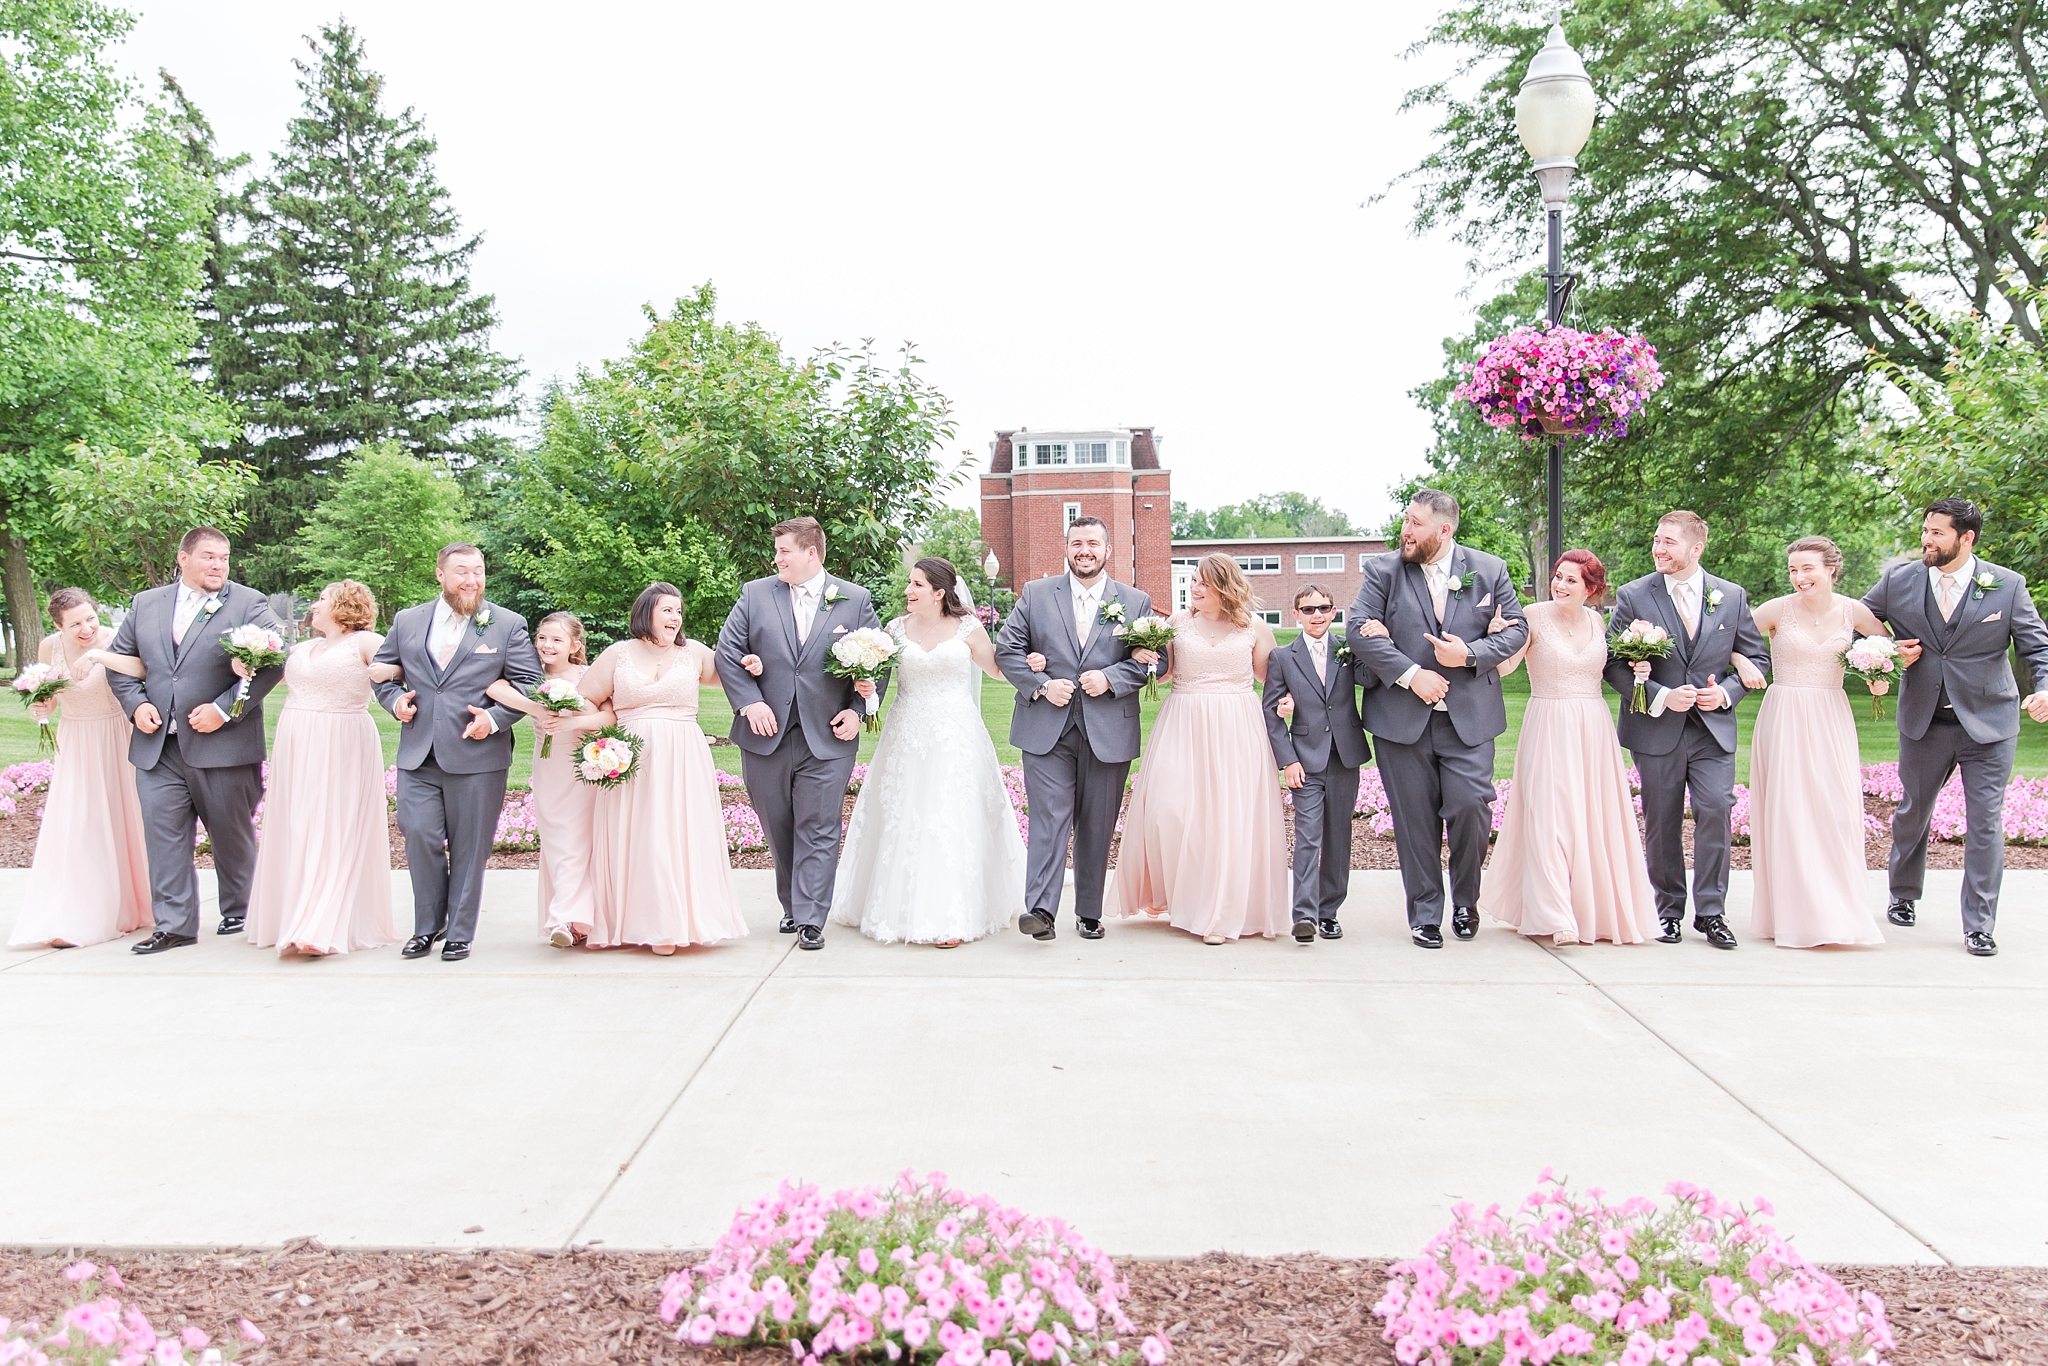 emotional-laid-back-romantic-wedding-photos-at-adrian-college-herrick-chapel-in-adrian-michigan-by-courtney-carolyn-photography_0047.jpg